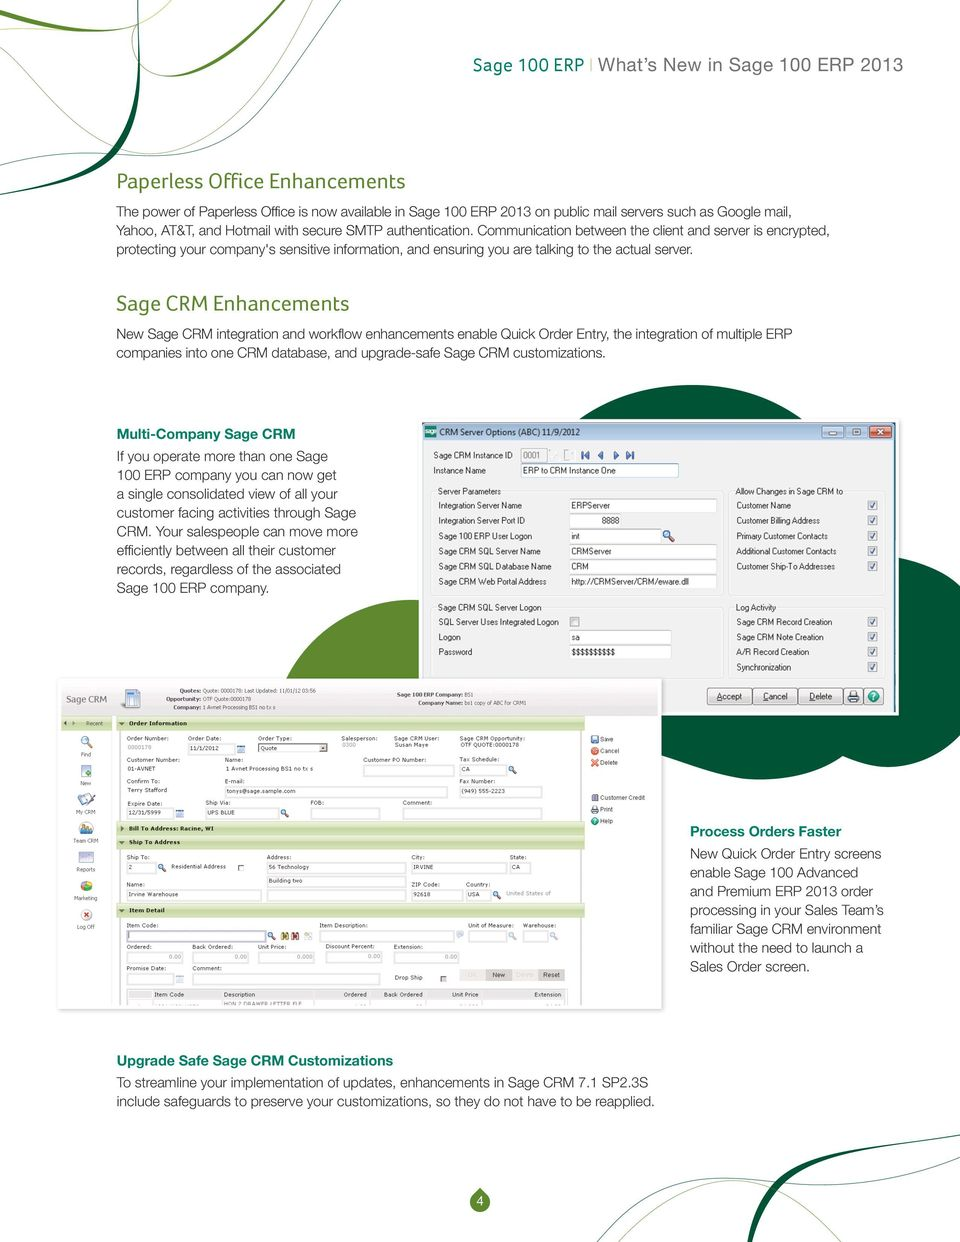 Sage CRM Enhancements New Sage CRM integration and workflow enhancements enable Quick Order Entry, the integration of multiple ERP companies into one CRM database, and upgrade-safe Sage CRM